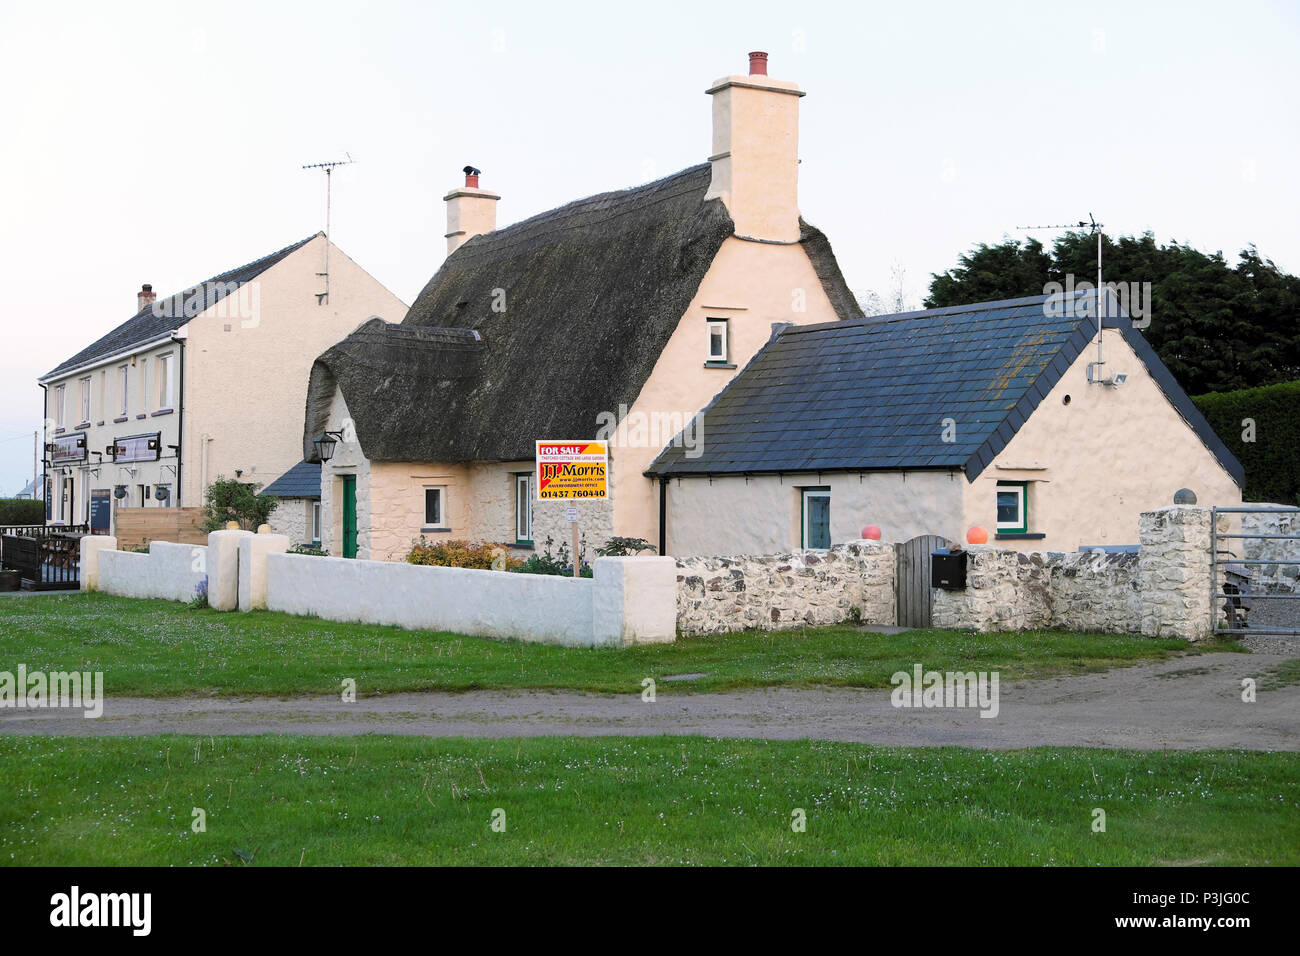 For sale sign on a thatched cottage in the village of Marloes Pembrokeshire Wales, UK  KATHY DE WITT Stock Photo